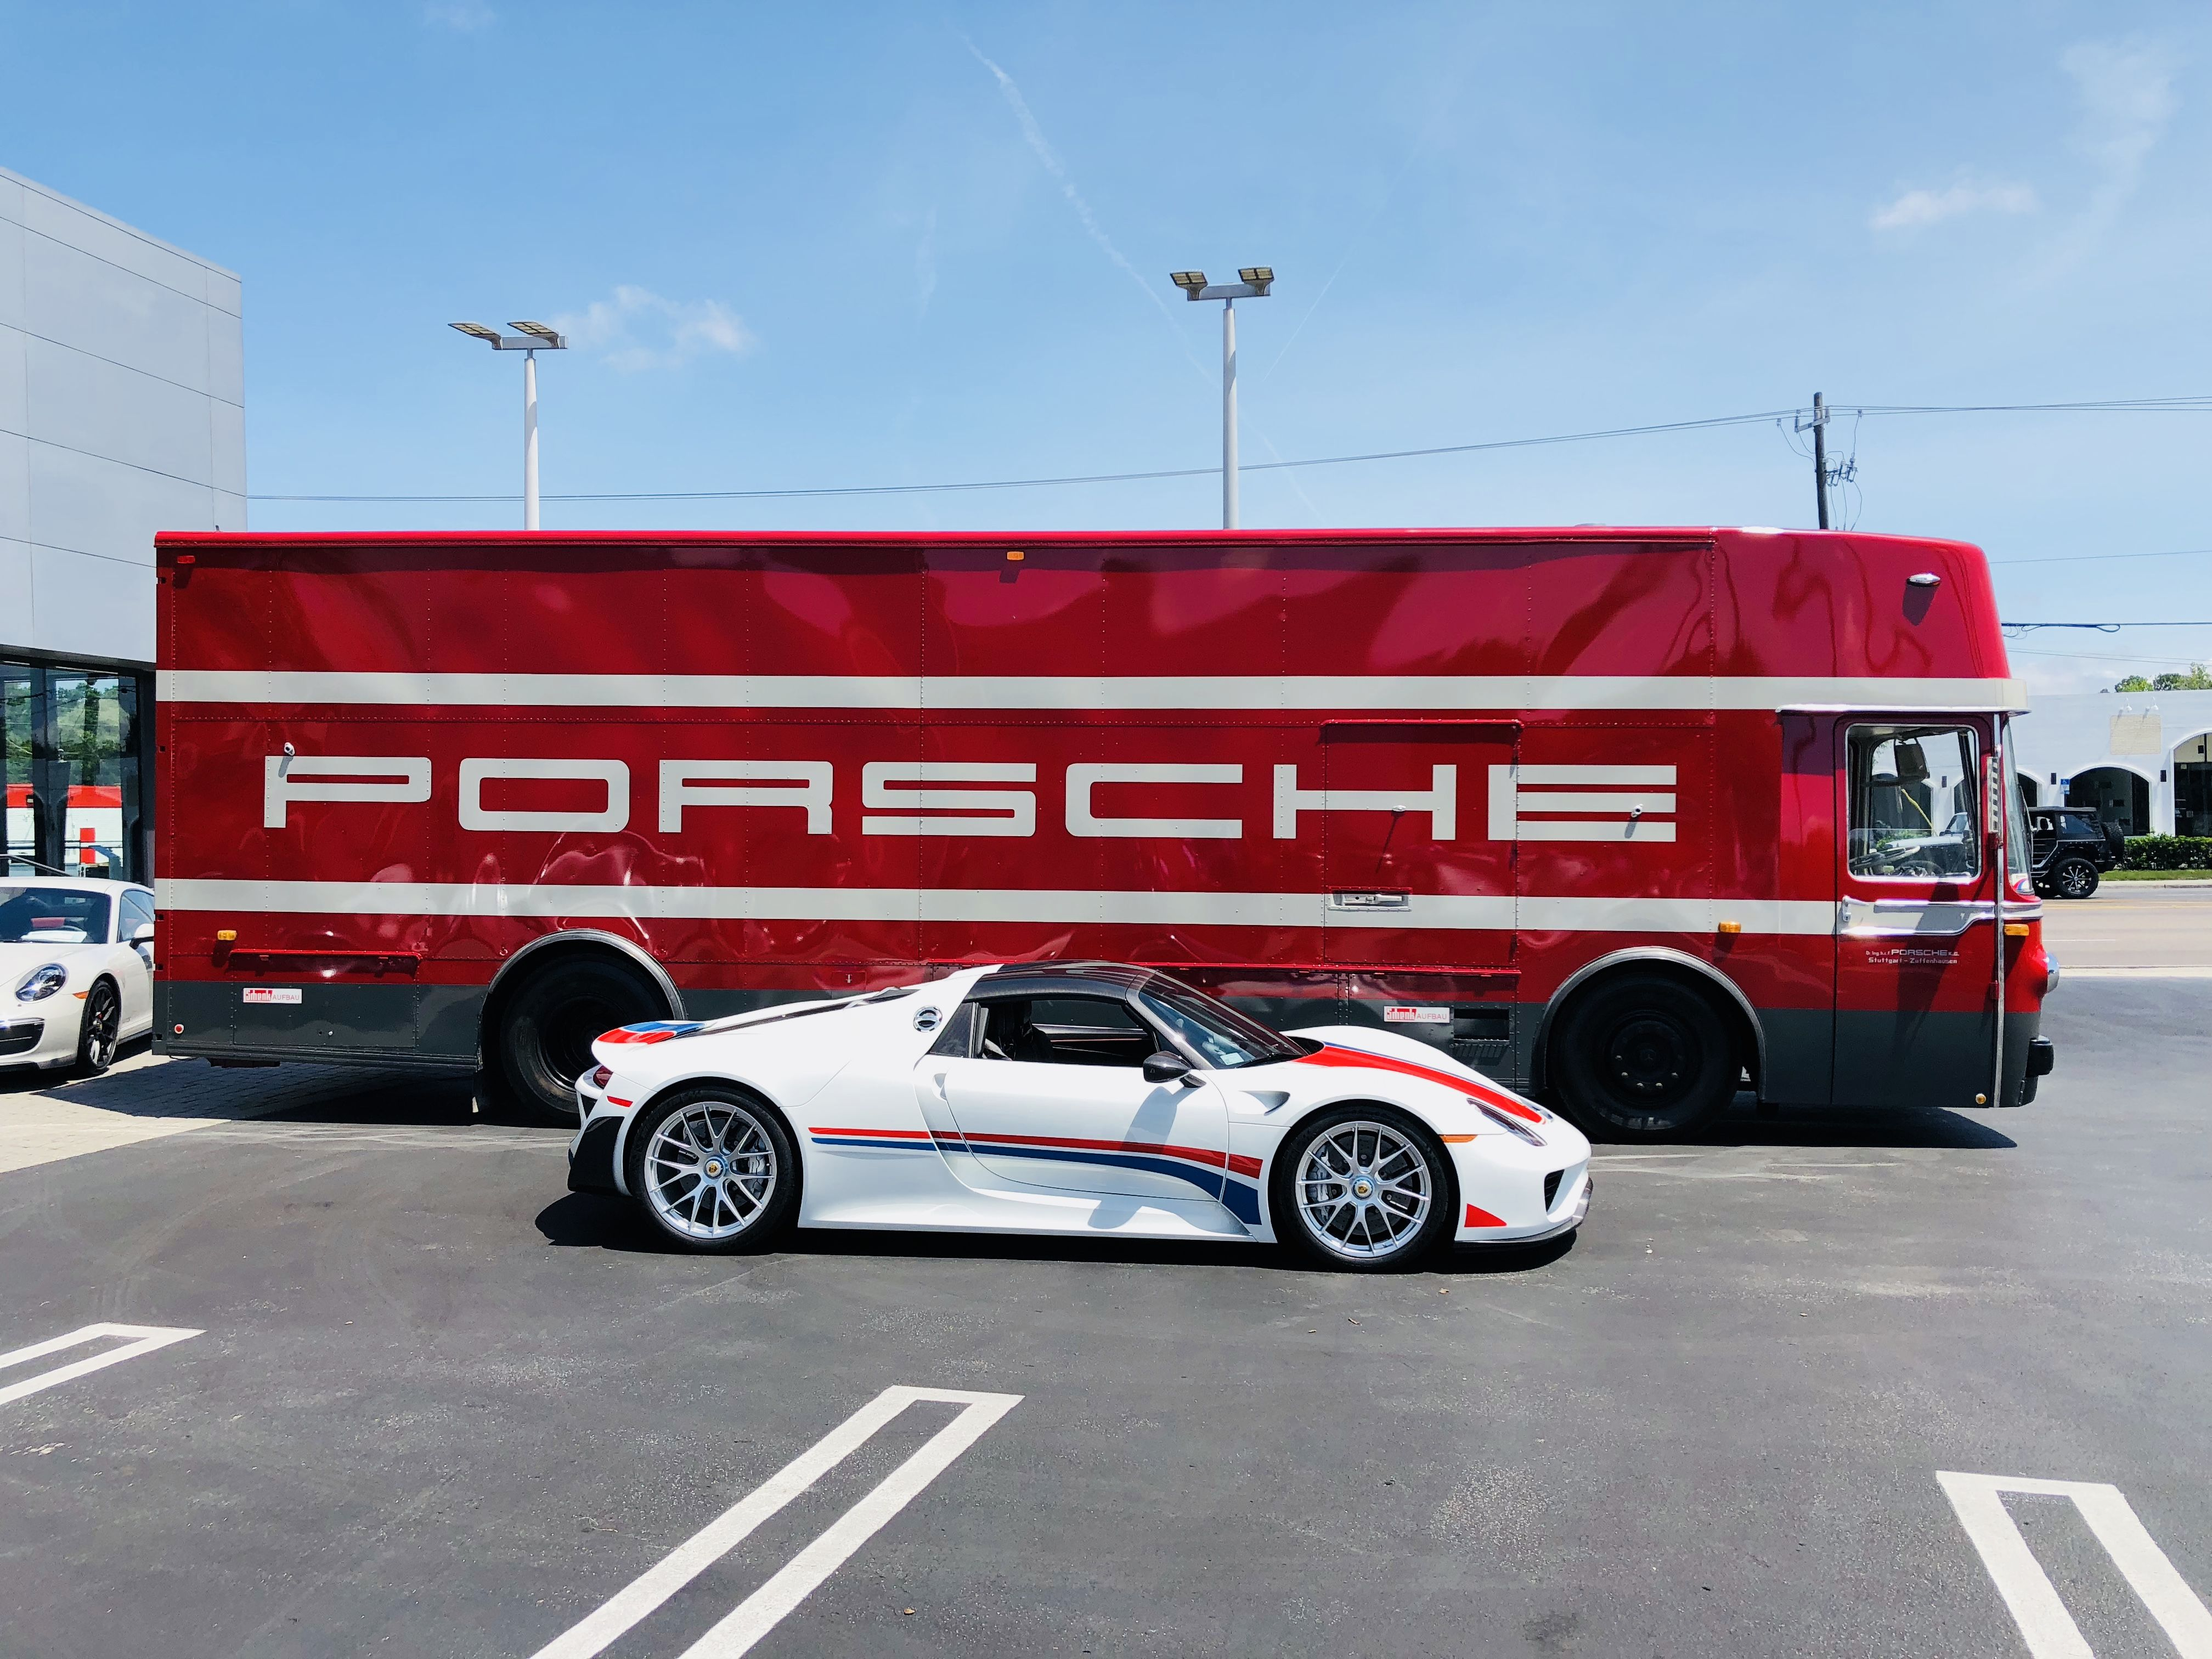 The Porsche Factoryteam Race Transporter Came By Today For An Unexpected Visit The Transporter Is A 1968 Mercedes That Race Cars Race Track Special Events